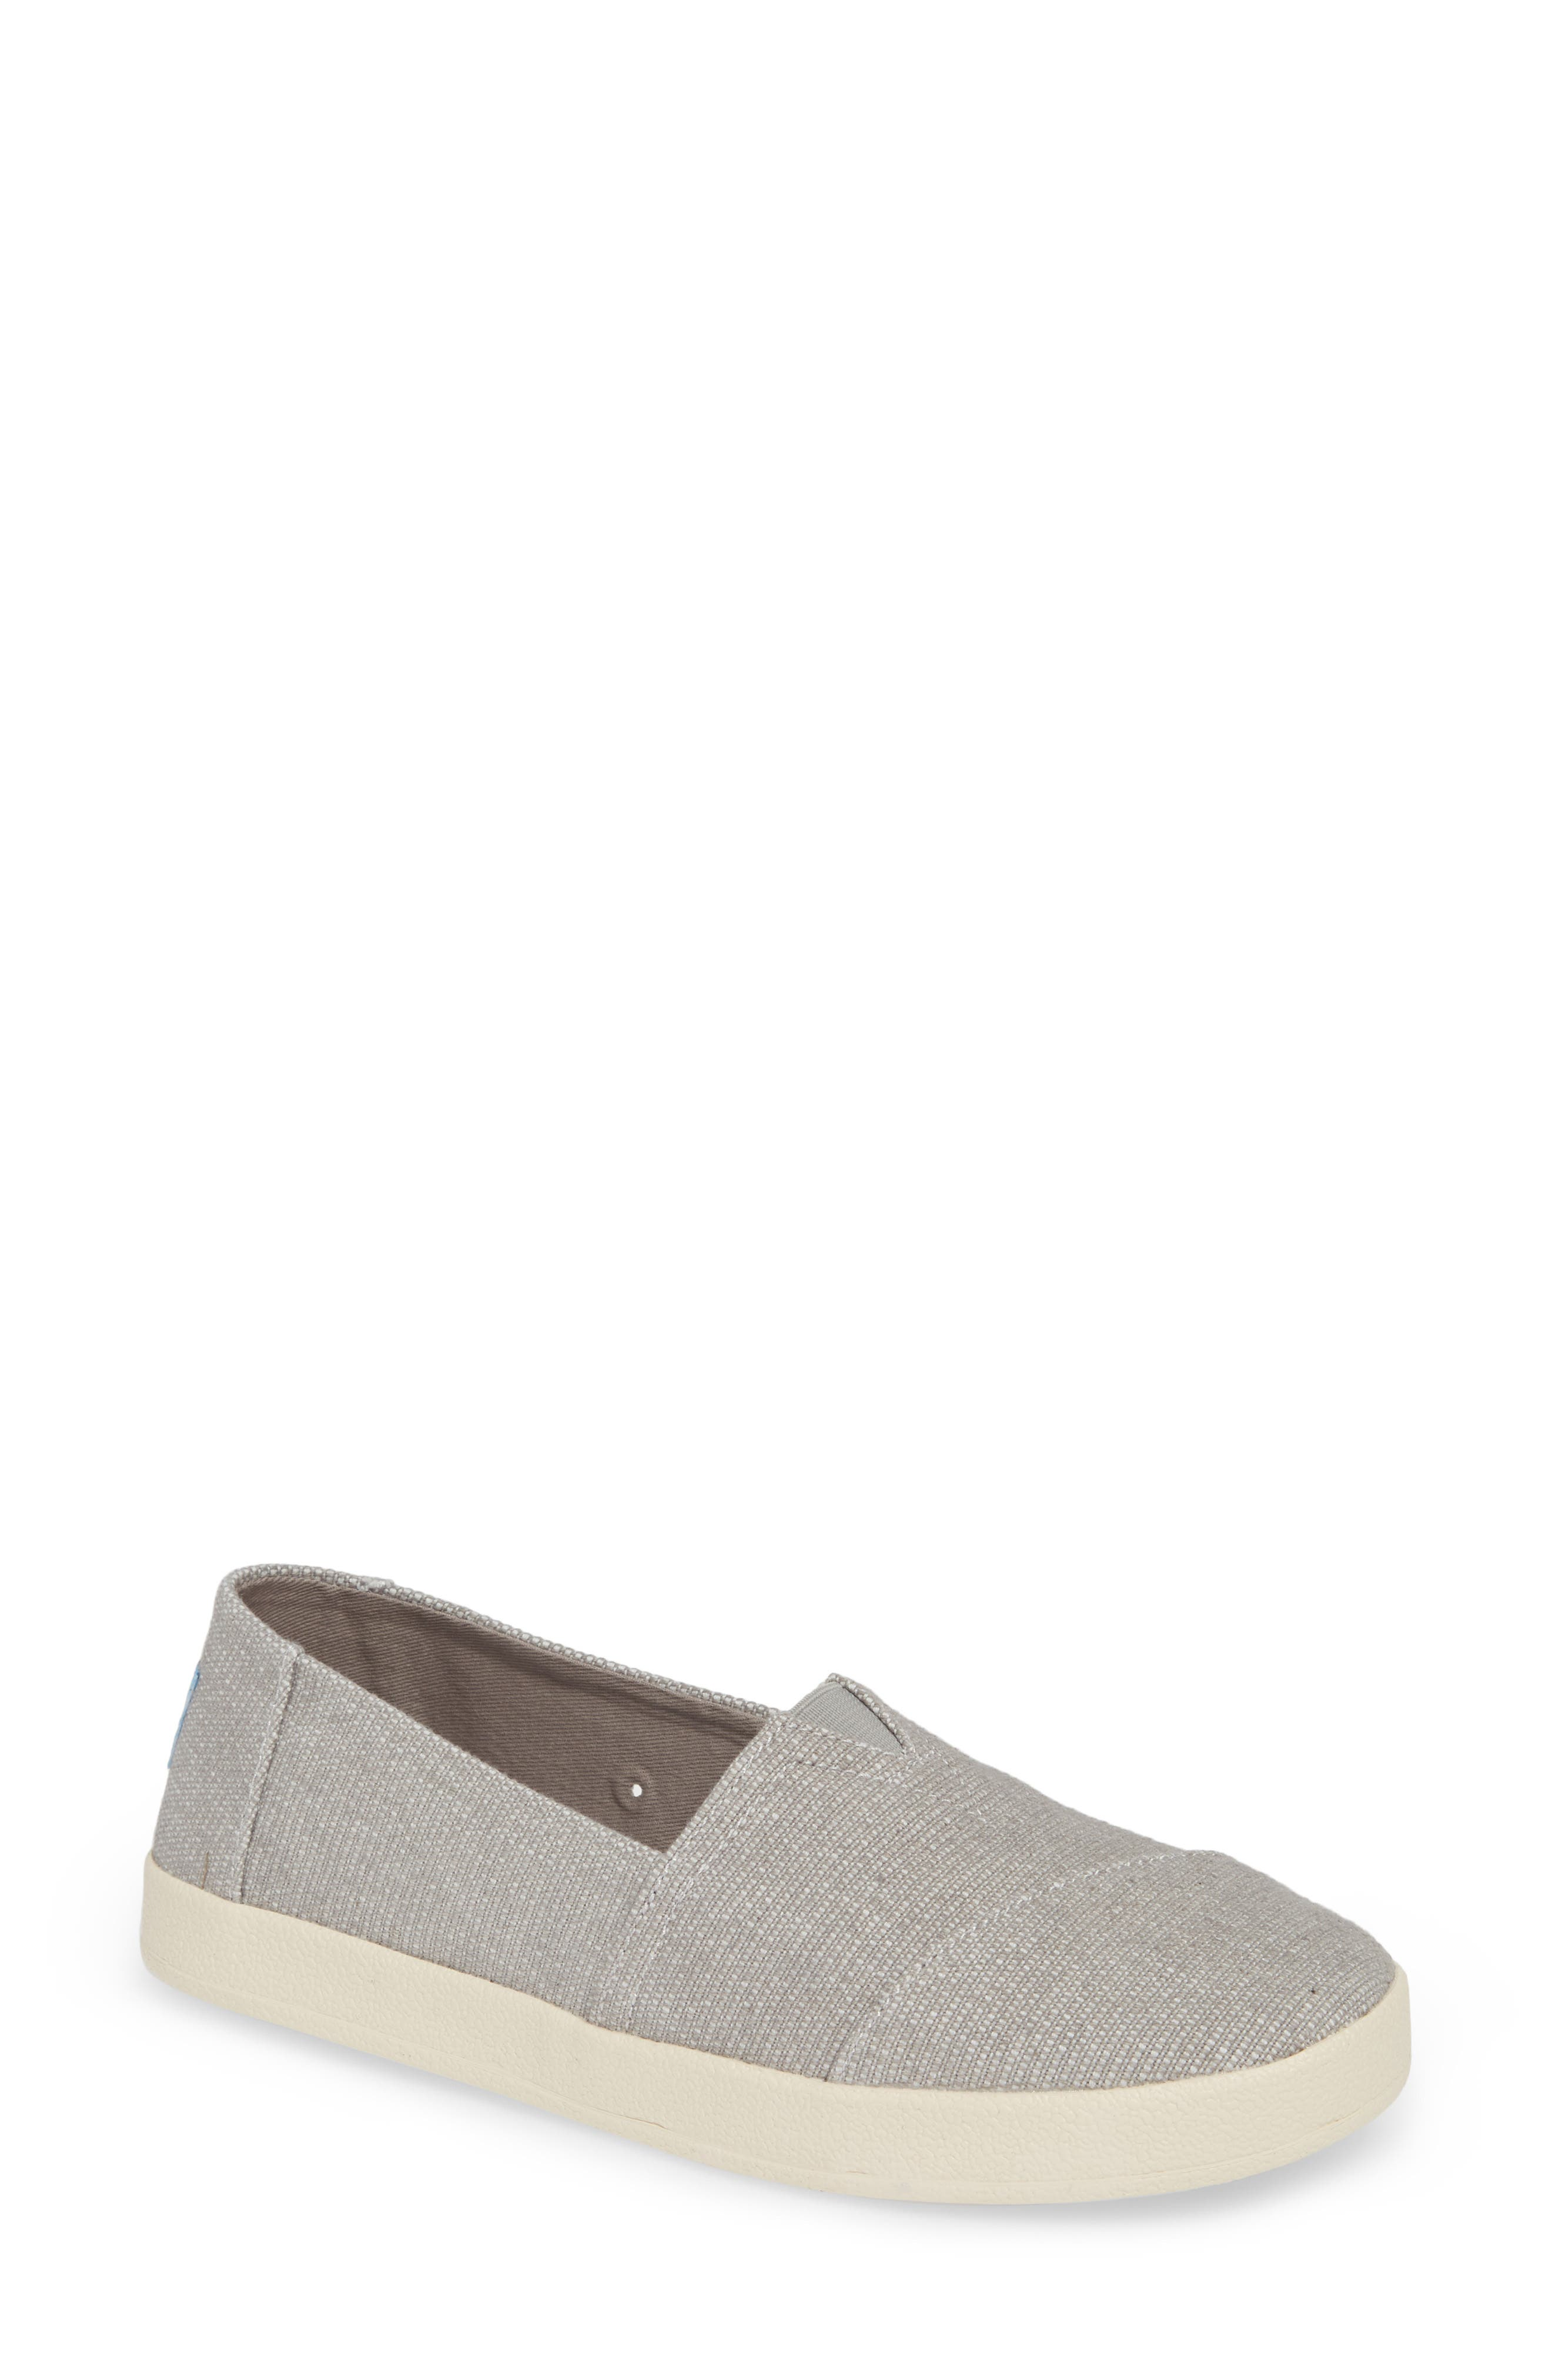 TOMS, Avalon Slip-On Sneaker, Main thumbnail 1, color, DRIZZLE GREY CANVAS